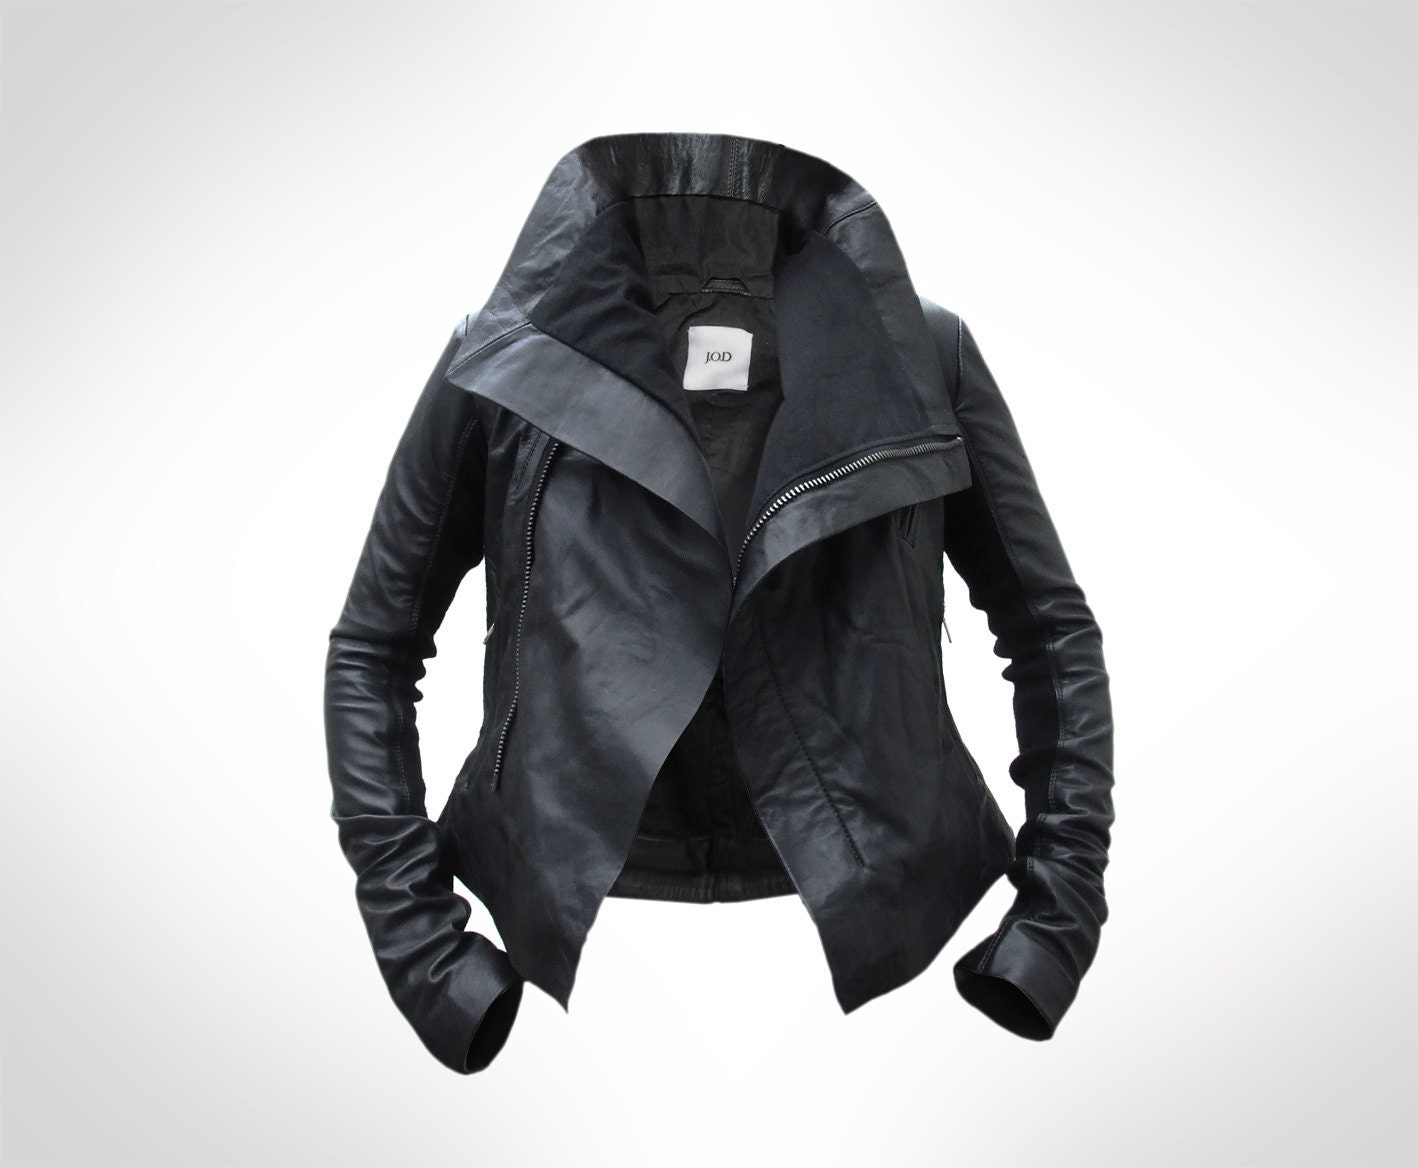 Black Leather Jacket Outfit Ideas